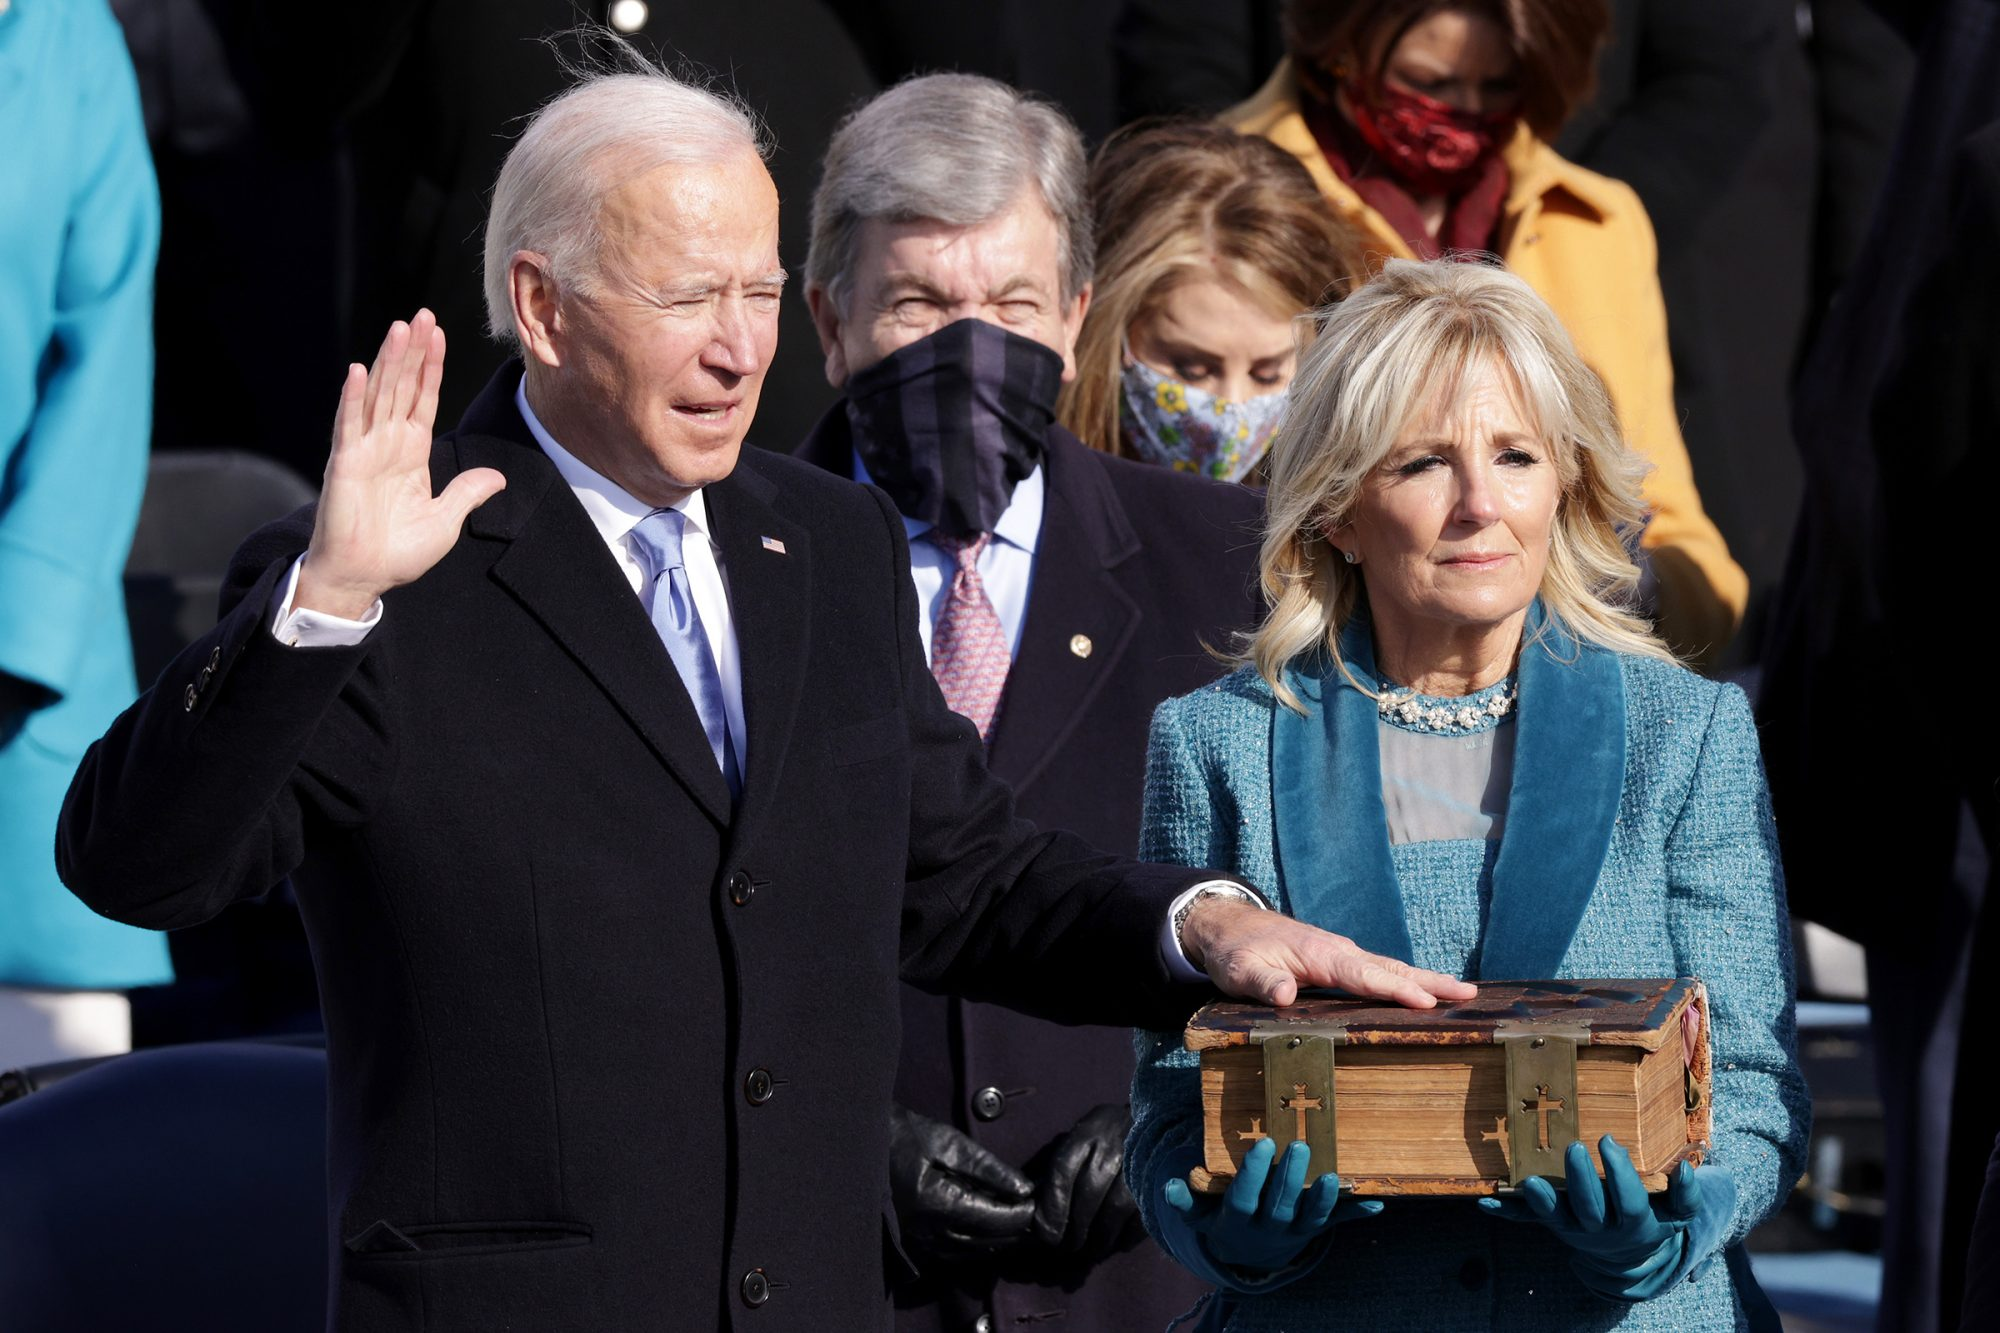 Joe Biden is sworn in as U.S. President as his wife Dr. Jill Biden looks on during his inauguration on the West Front of the U.S. Capitol on January 20, 2021 in Washington, DC